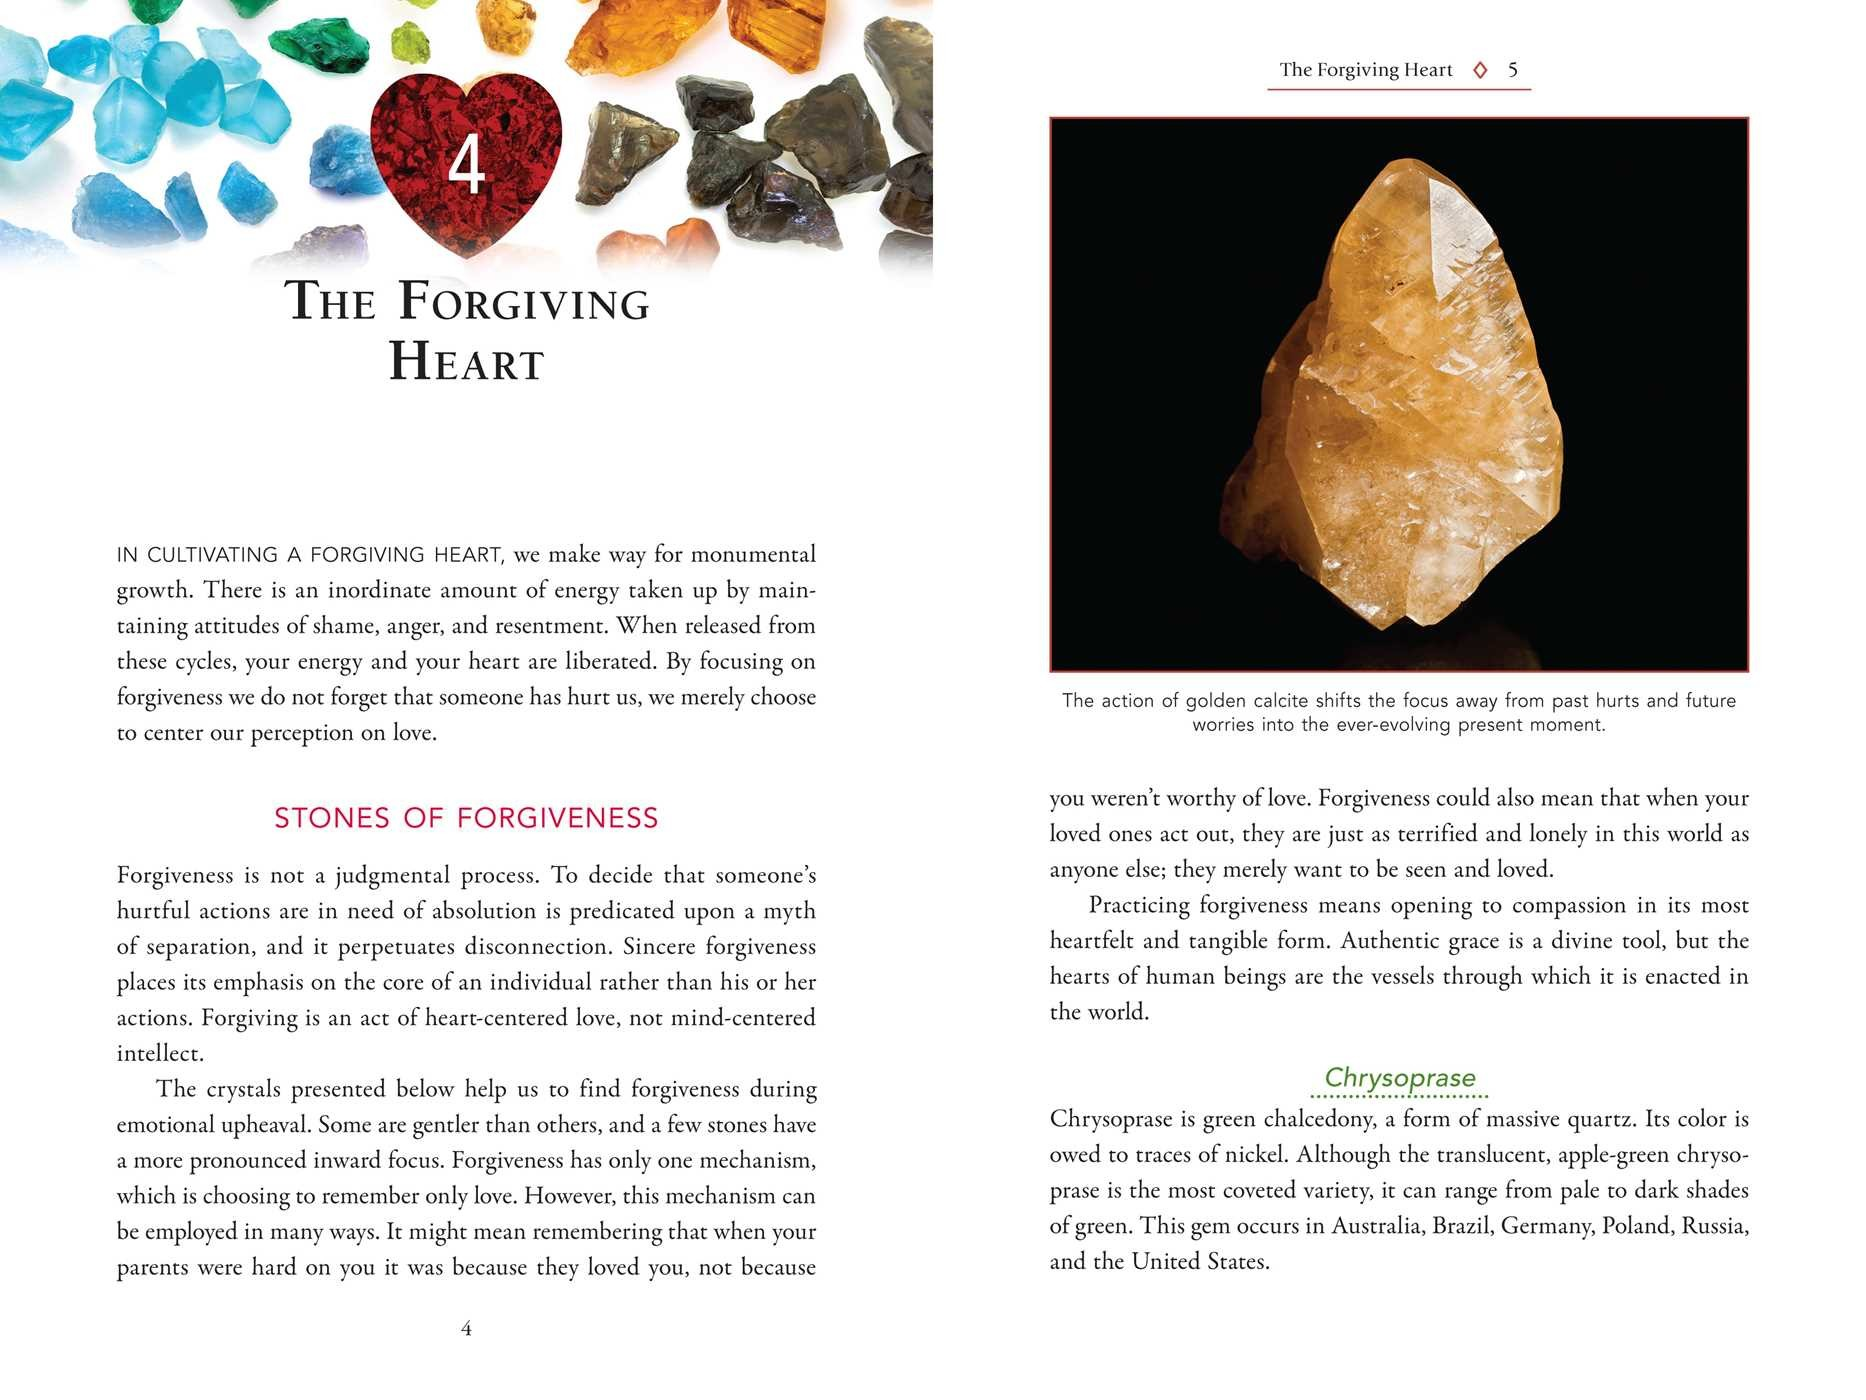 Crystal healing for the heart 9781620556566.in01